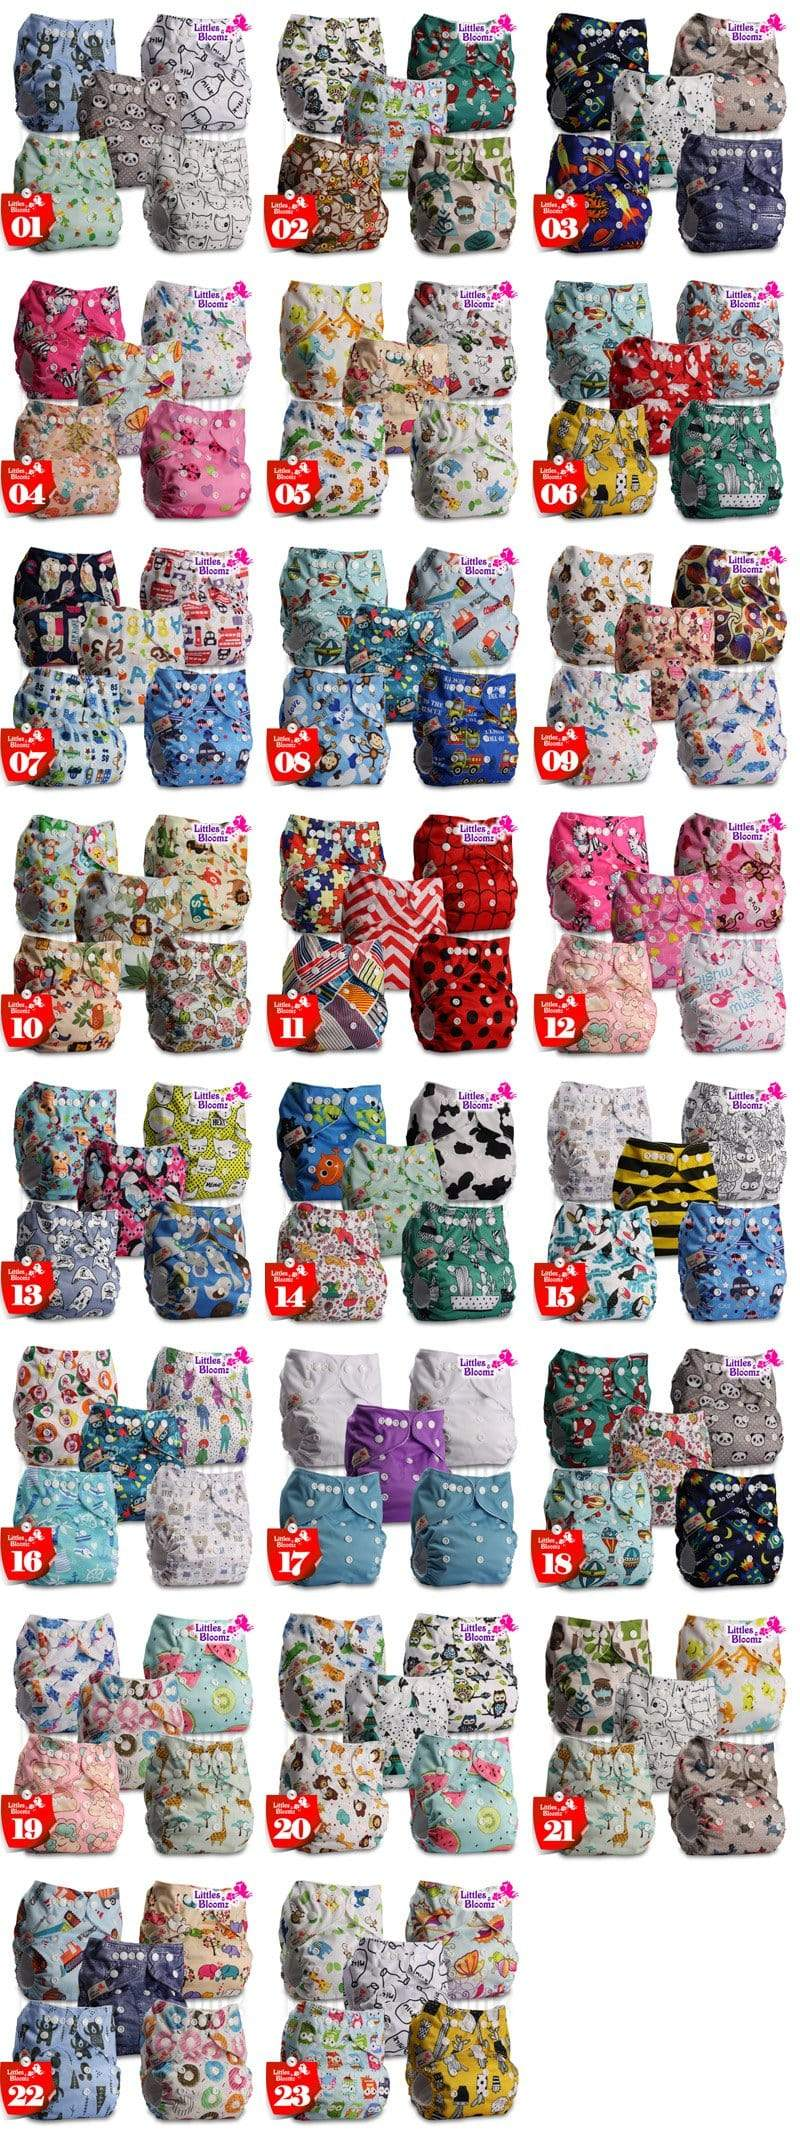 pocket diapers in multiple colors